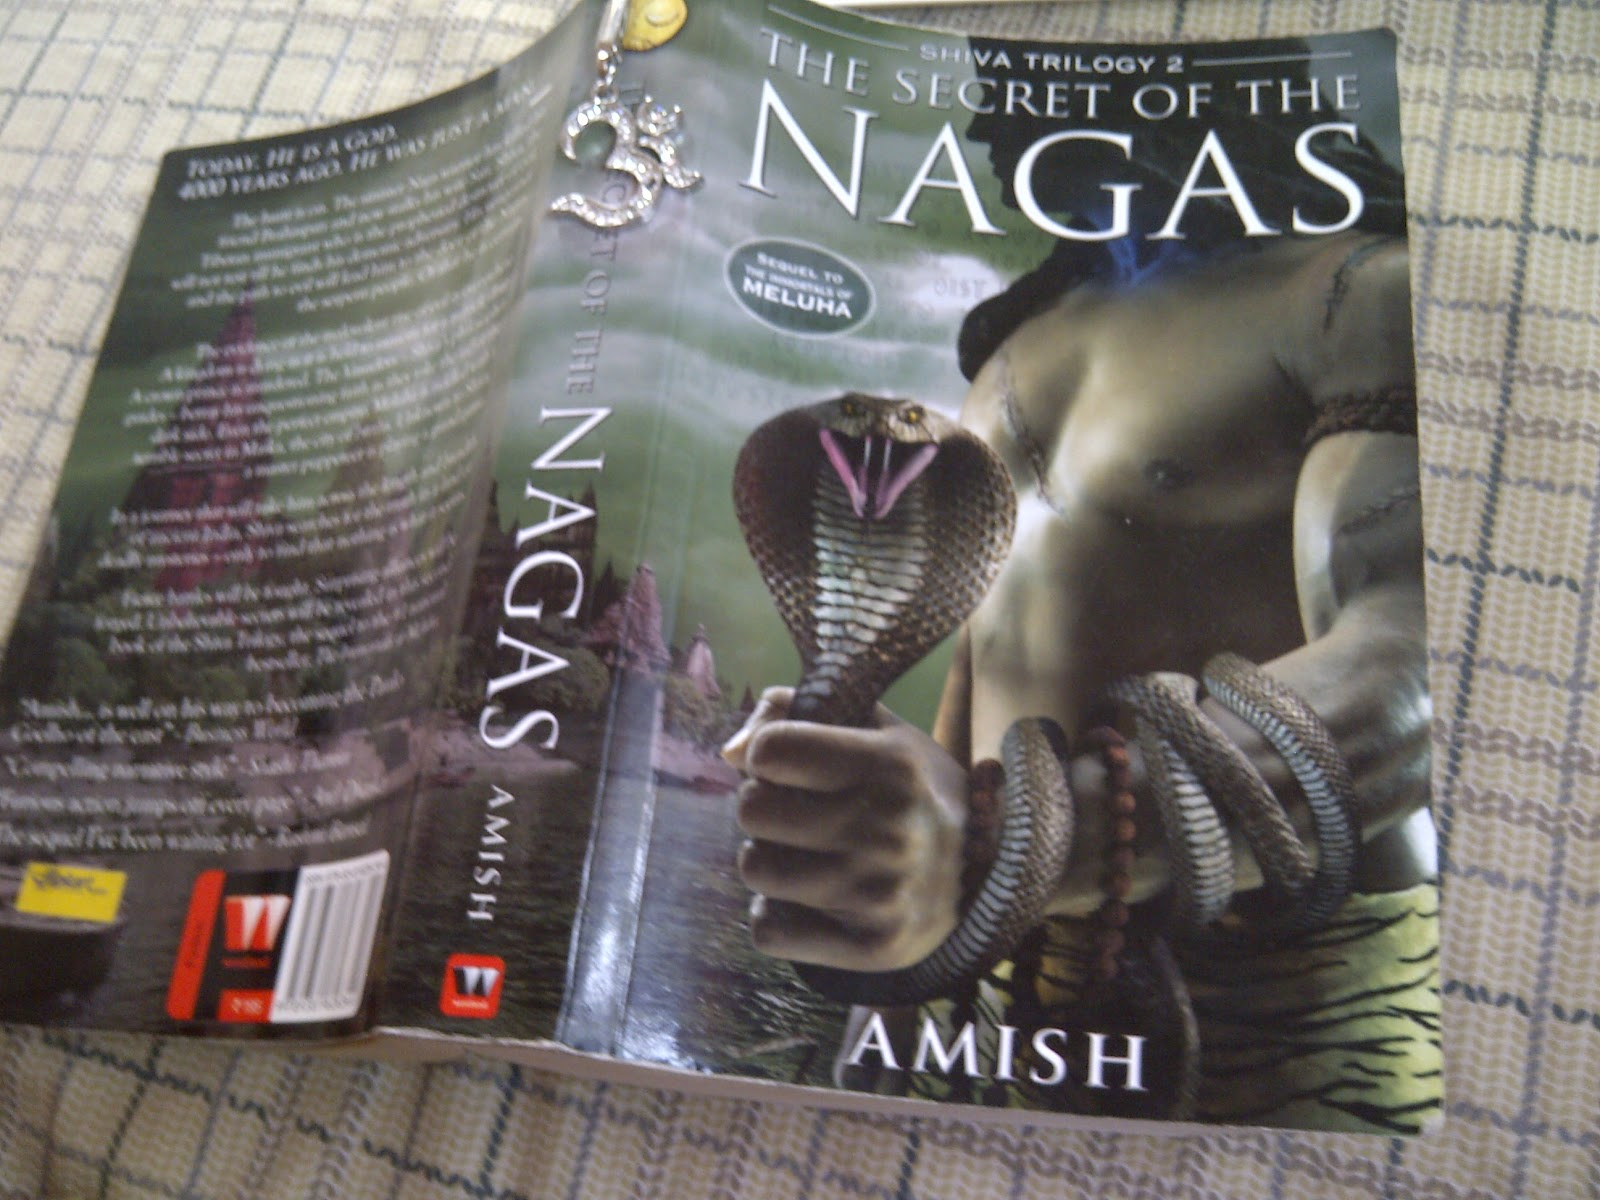 Immortals Of Meluha And The Secret Of The Nagas The secrets of the    Immortals Of Meluha And The Secret Of The Nagas